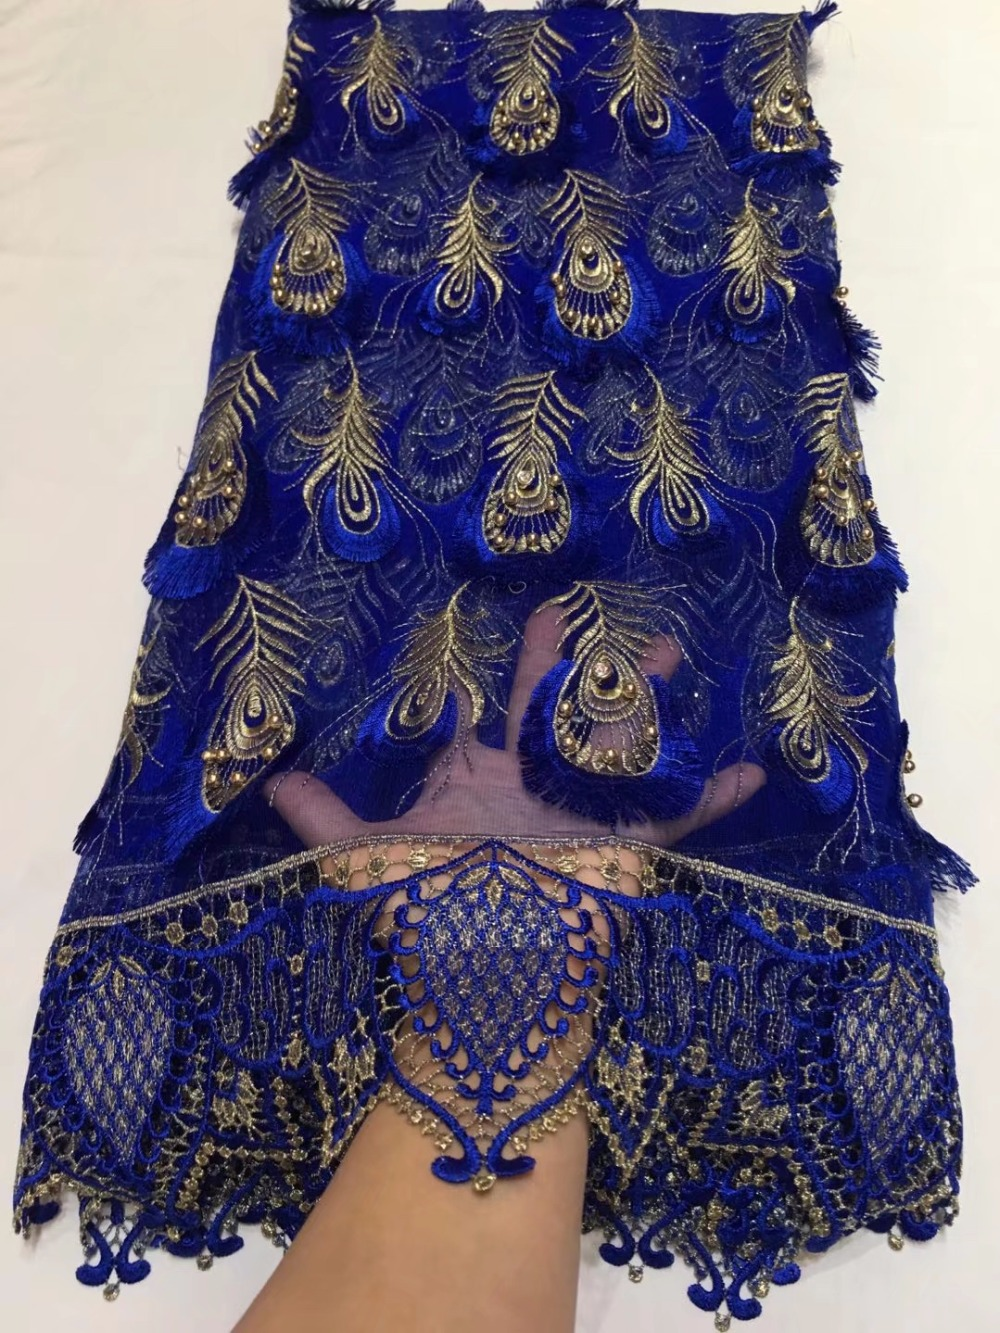 Nigerian French Tulle Lace Fabric With Beaded African French Net Lace Fabric Embroidered  Guipure Cord Lace FabricsNigerian French Tulle Lace Fabric With Beaded African French Net Lace Fabric Embroidered  Guipure Cord Lace Fabrics